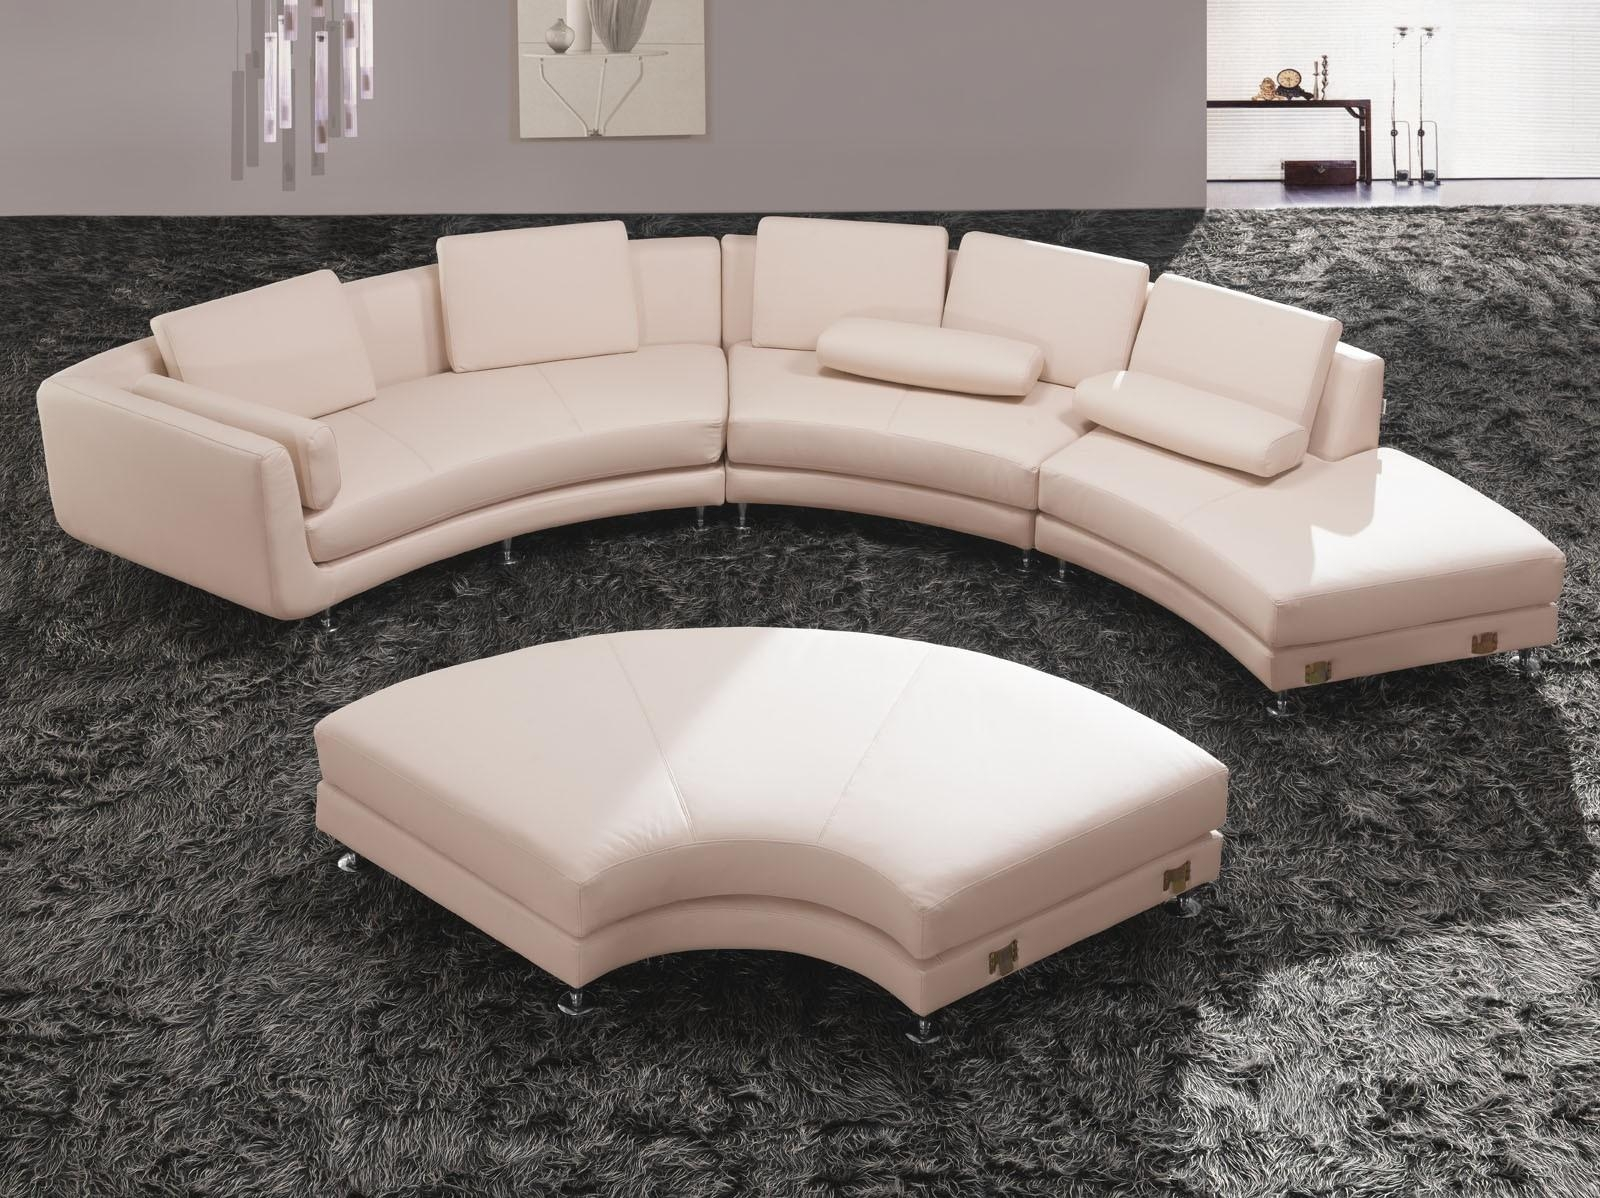 Sofas Center : Round Sofas Sectionals Images Of Photo Albums Within Round Sofas (Image 20 of 20)